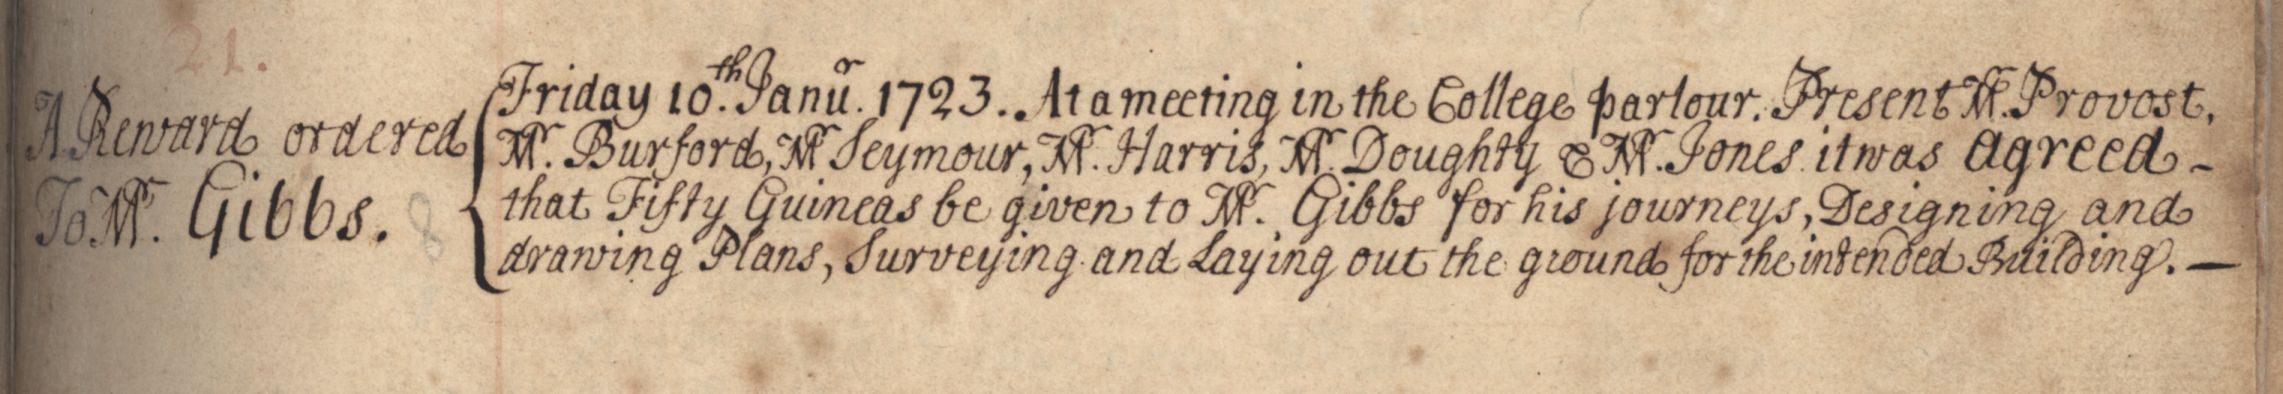 Record of the agreement to pay James Gibbs fifty guineas, 10 January 1723. [KCGB/4/1/1/1]